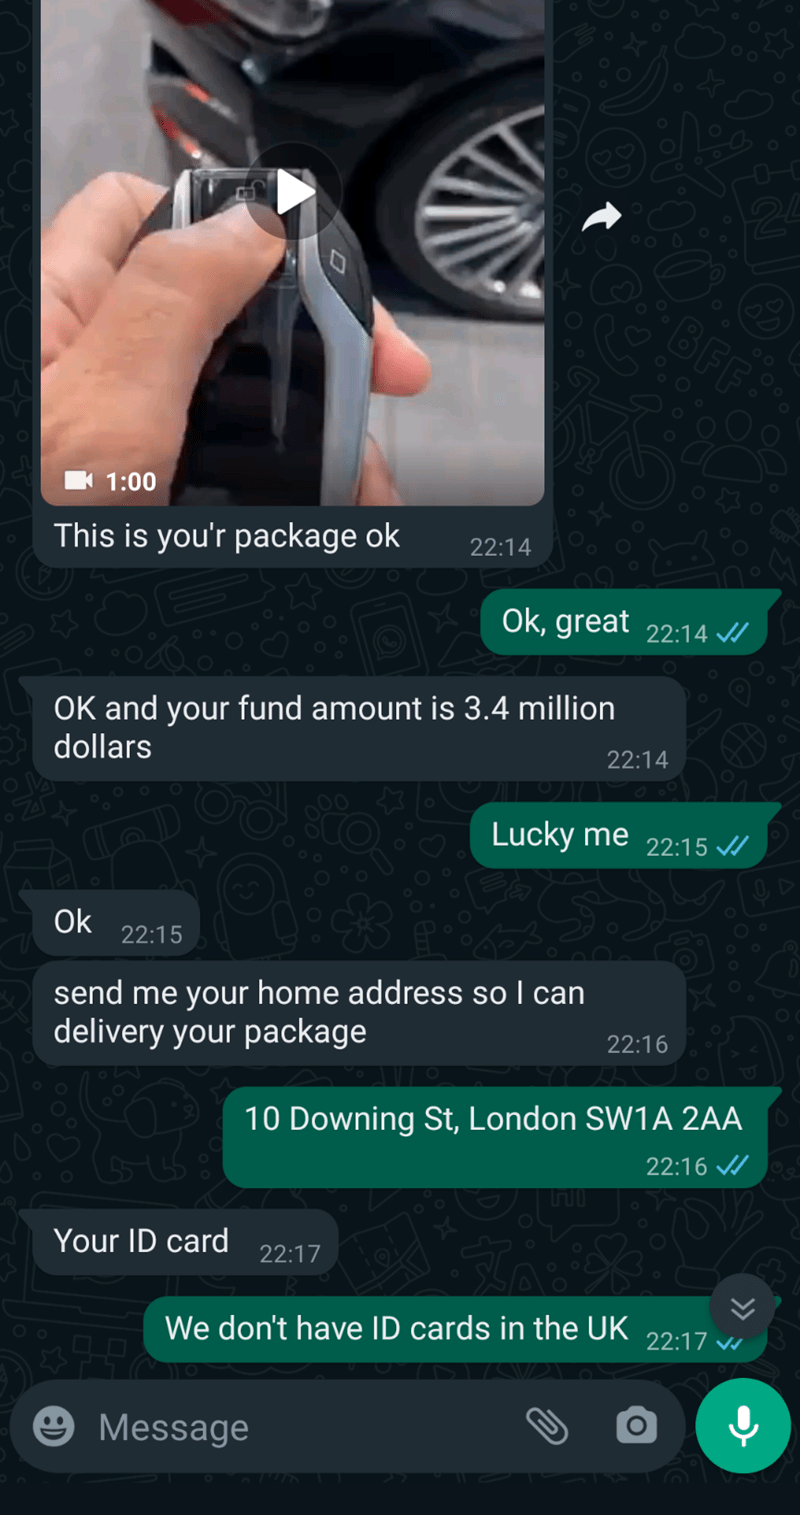 Light - BFF 1:00 This is you'r package ok 22:14 Ok, great 22:14 / OK and your fund amount is 3.4 million dollars 22:14 Lucky me 22:15 / Ok 22:15 01 send me your home address so I can delivery your package 22:16 10 Downing St, London SW1A 2AA 22:16 / Your ID card 22:17 We don't have ID cards in the UK 22:17 v e Message